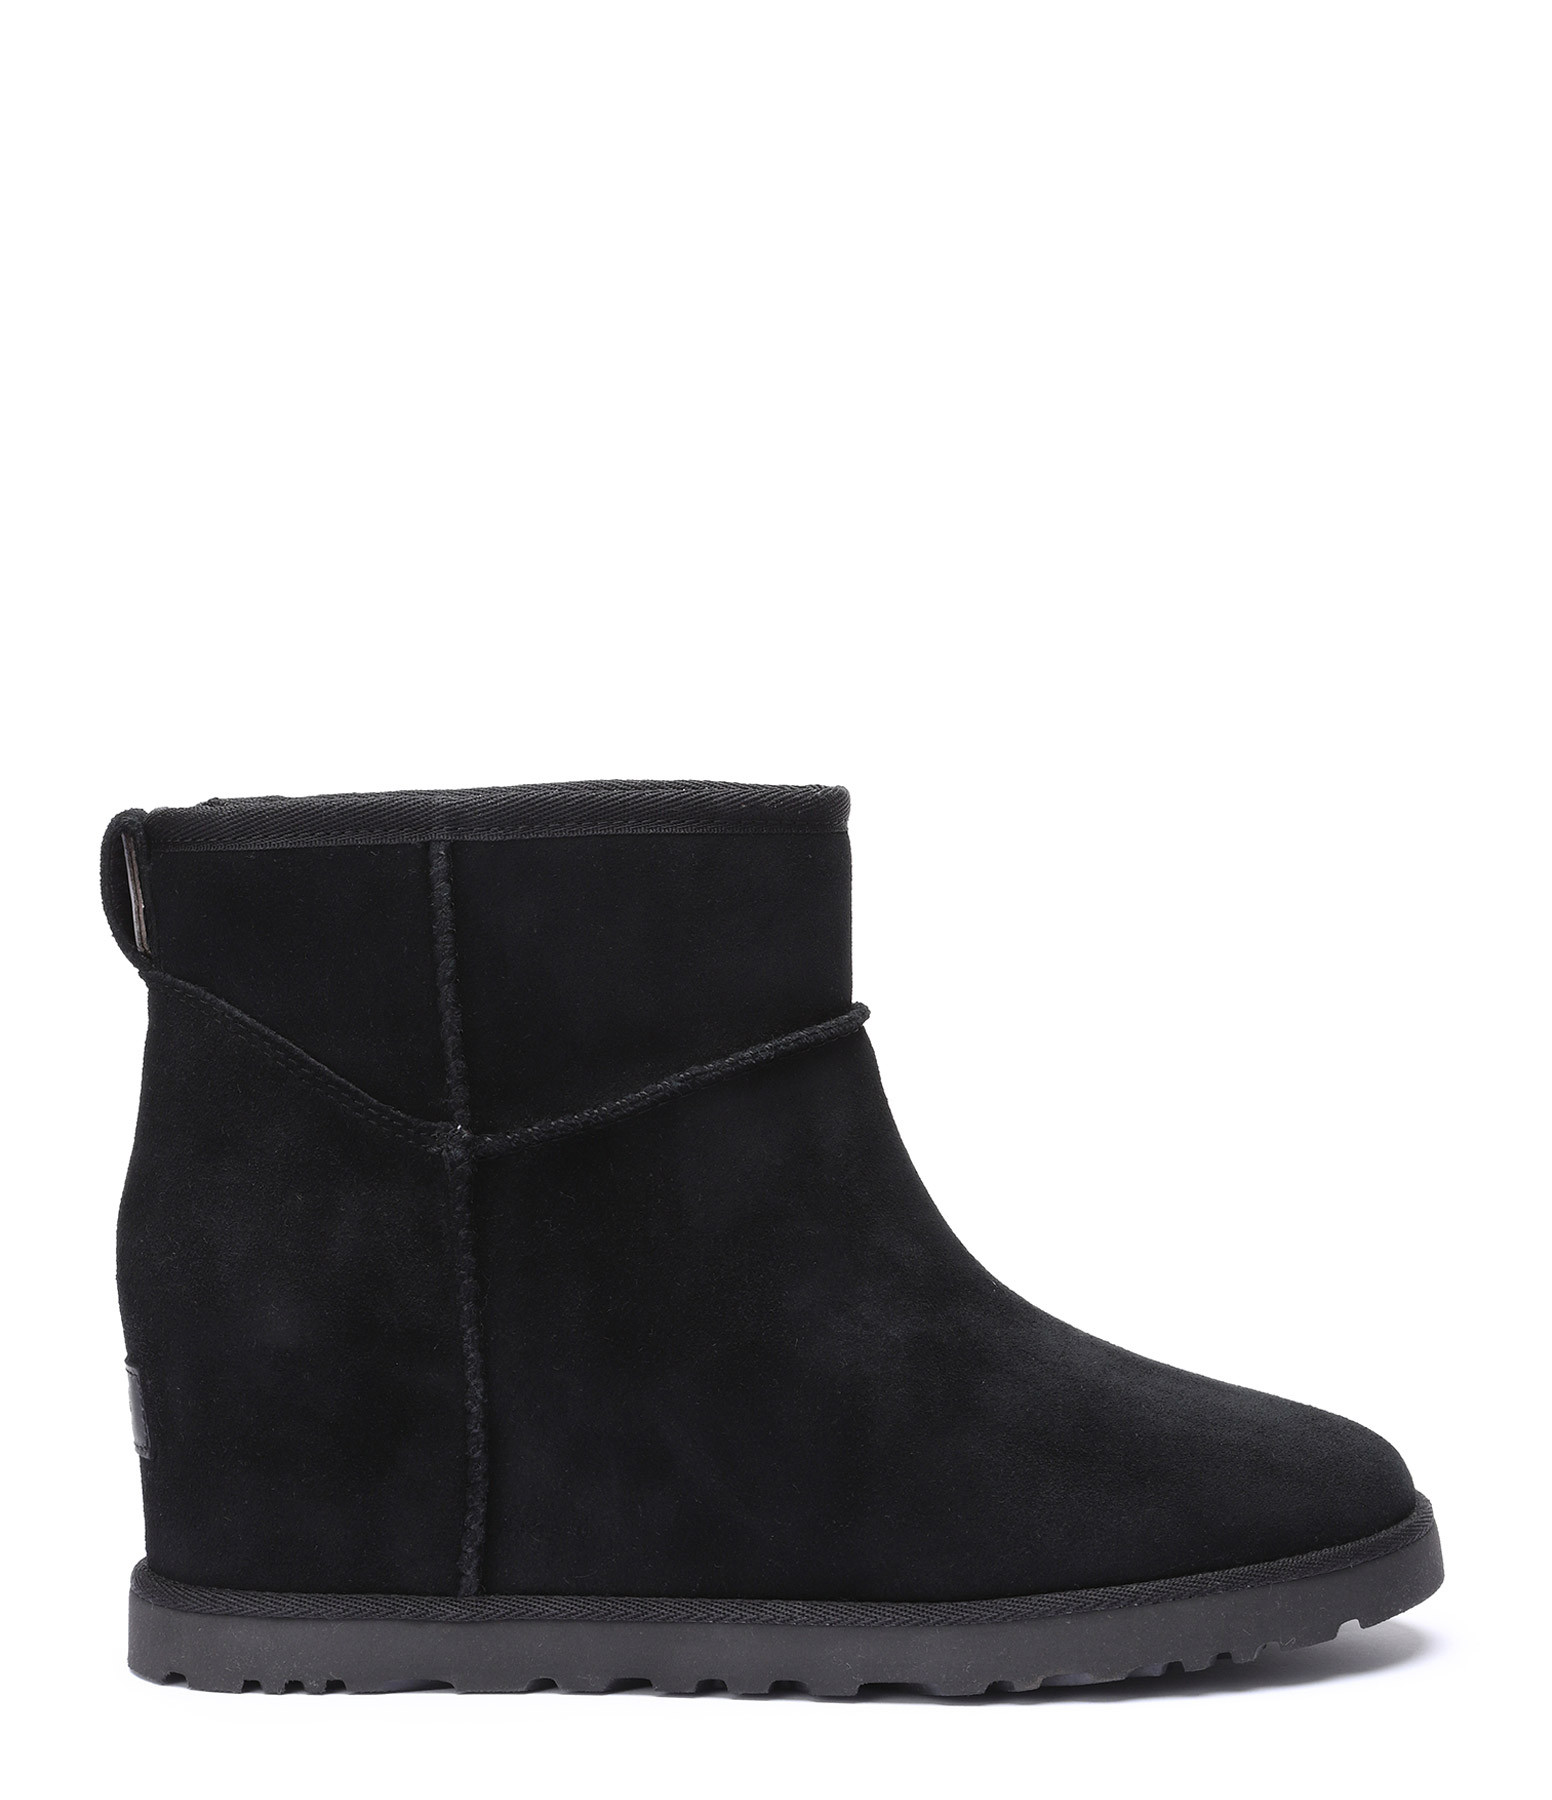 UGG - Bottines Classic Mini Noir